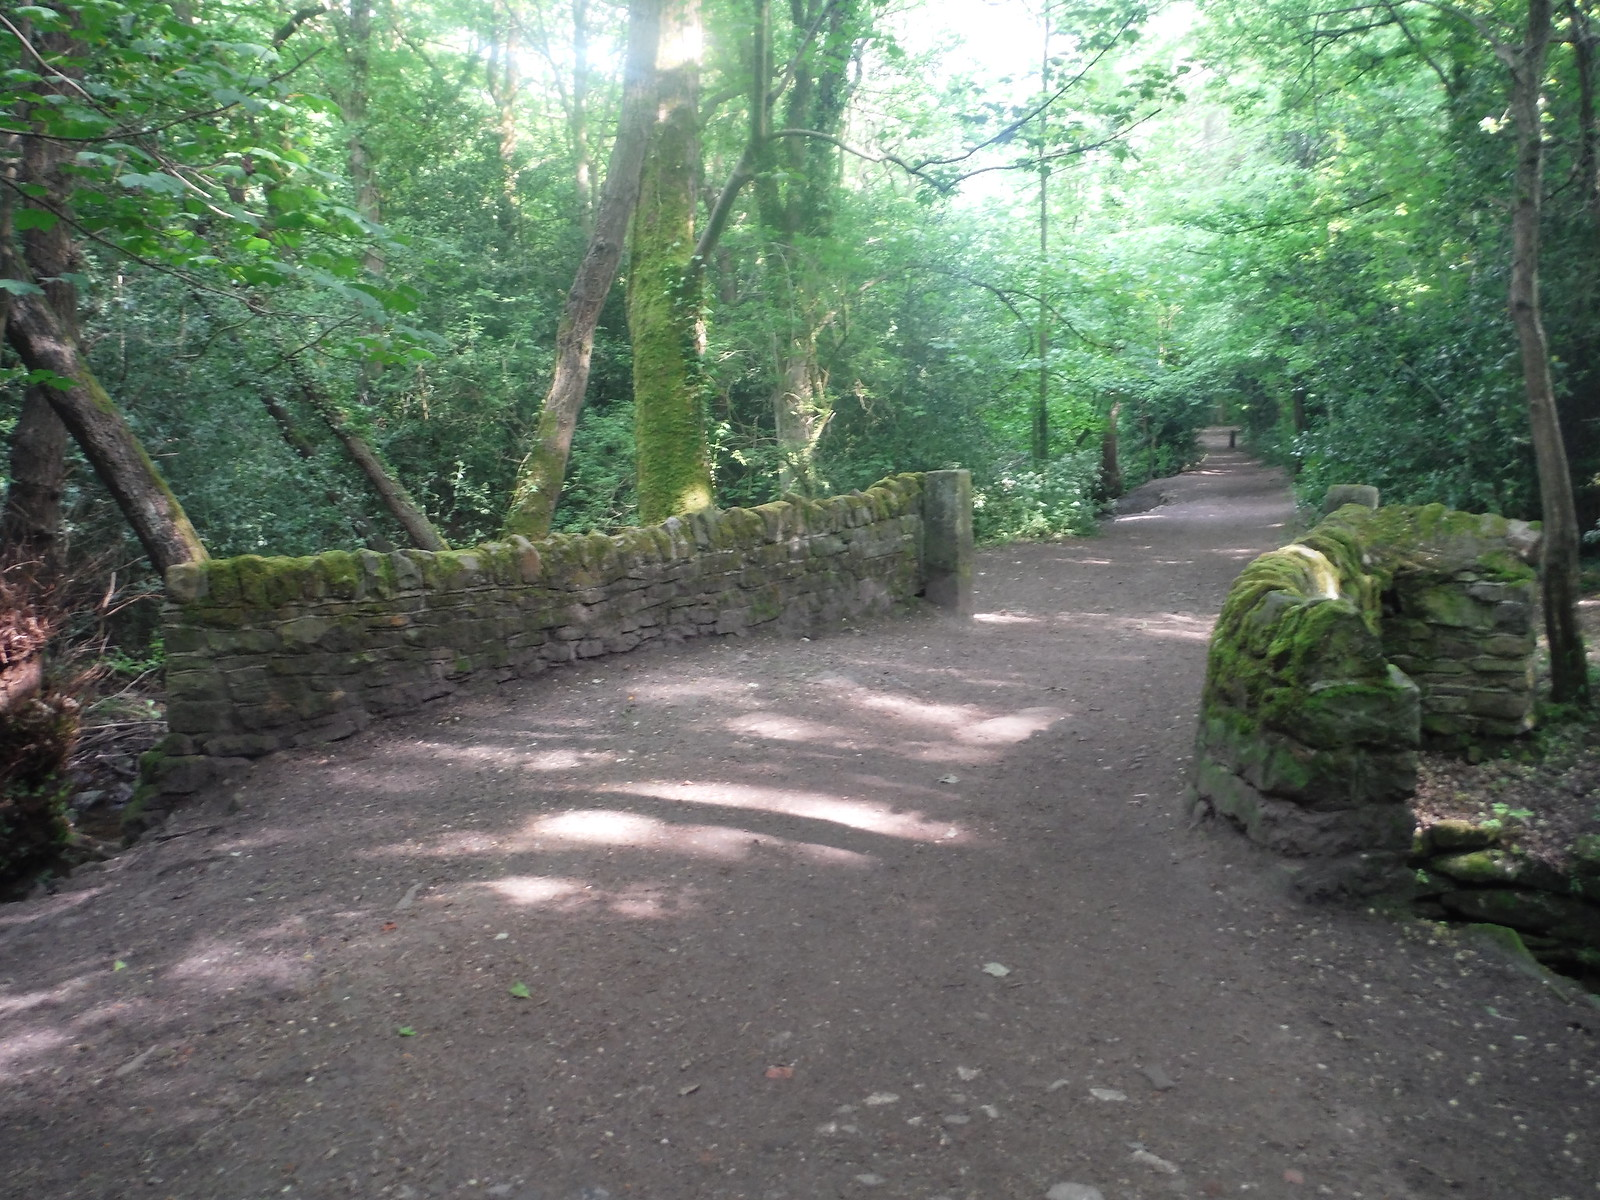 Grade II listed packhorse bridge, Ecclesall Woods SWC Walk 267 - Sheffield Circular (via Porter, Limb, Sheaf and Gleadless Valleys)